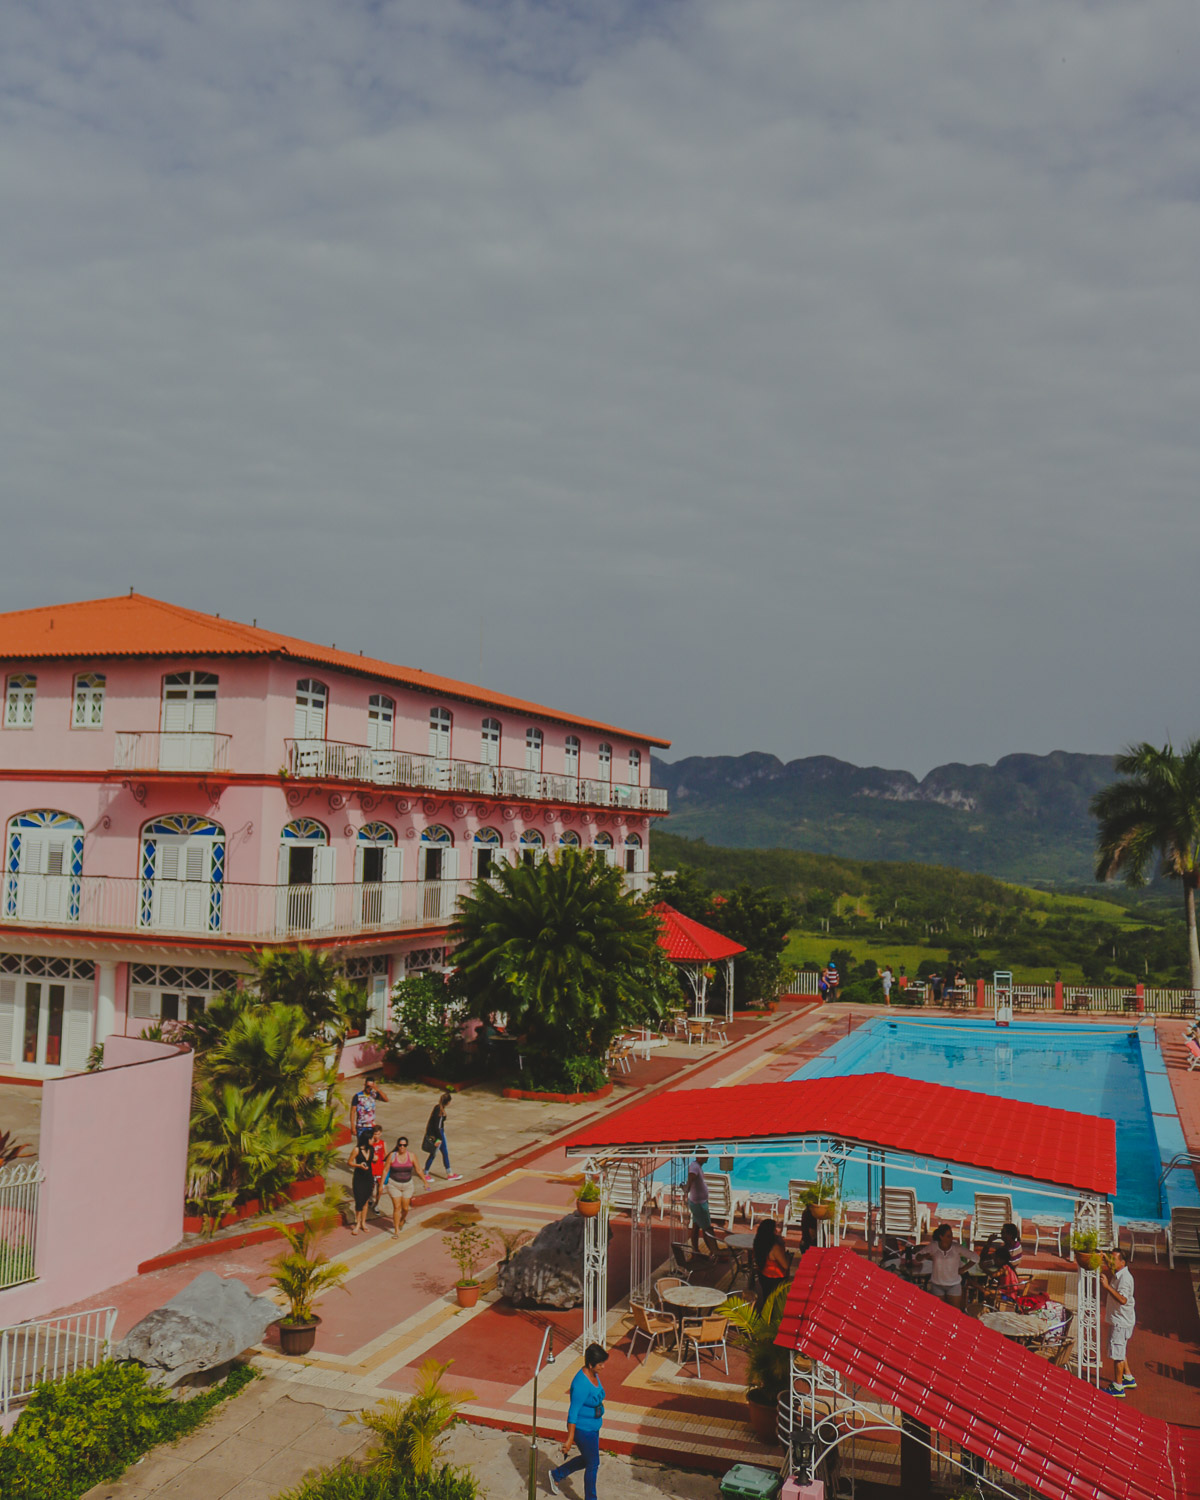 Hotel Los Jazmines, which was located right by the lookout point